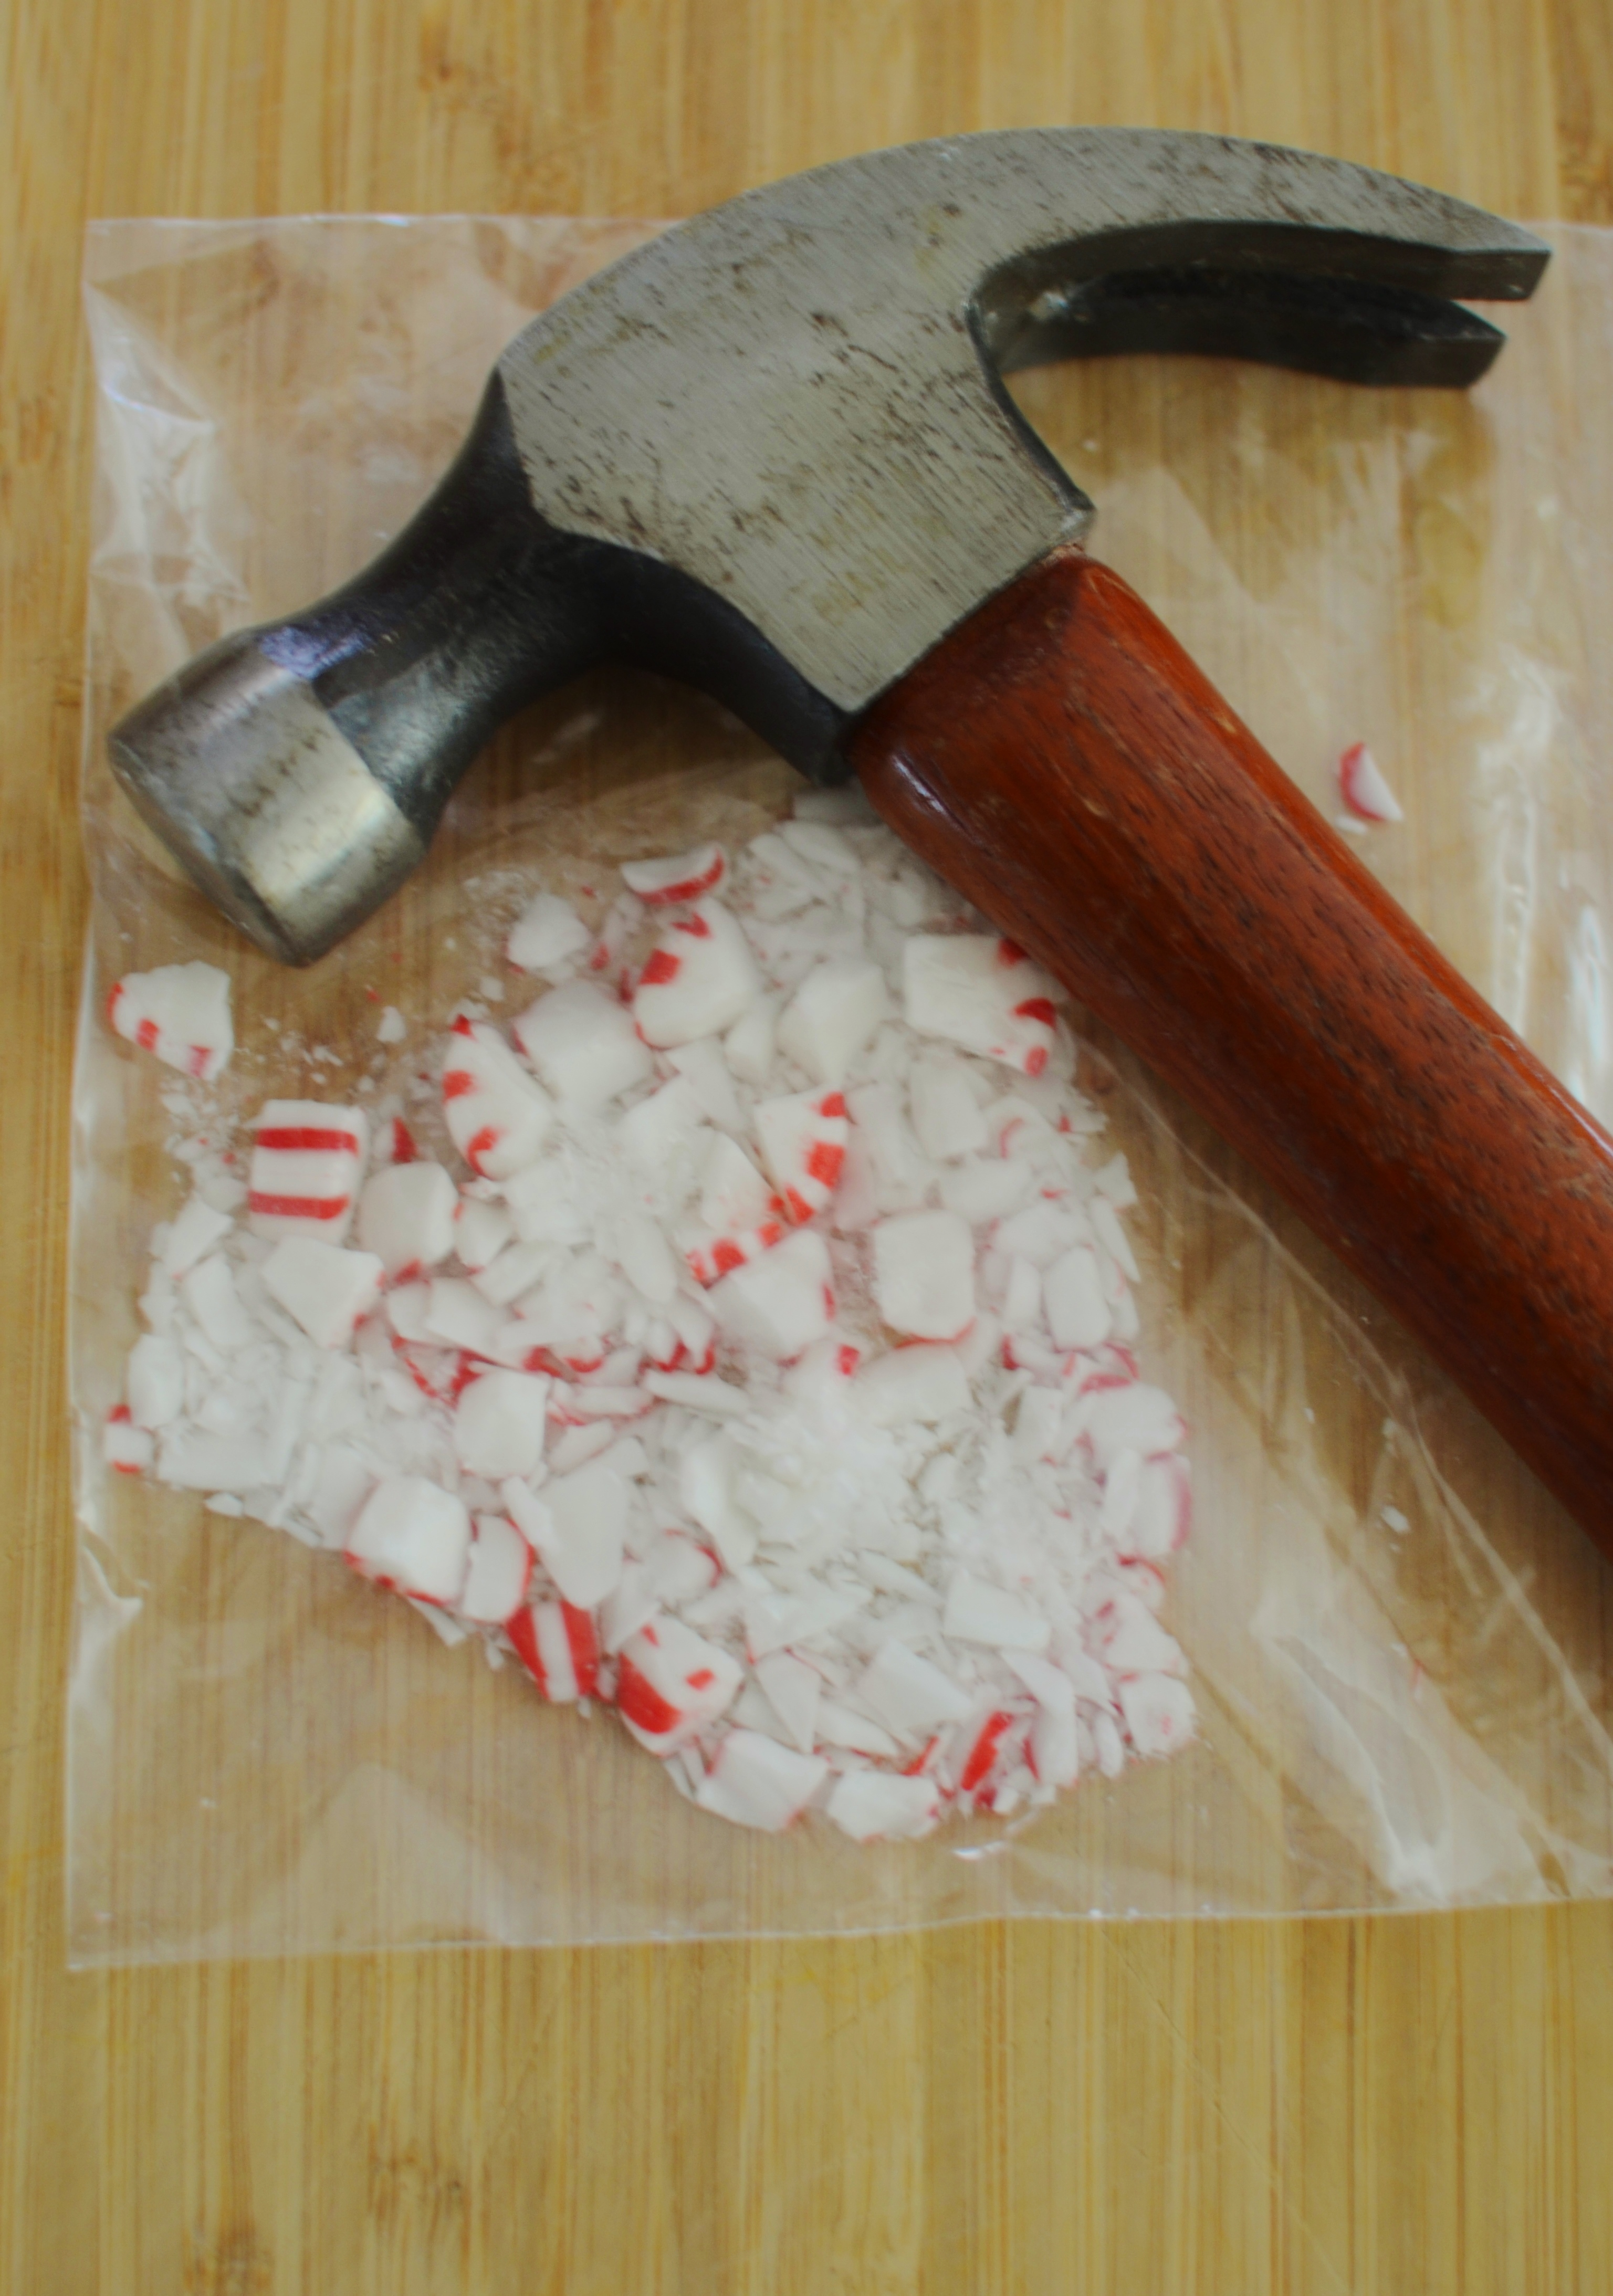 crushed peppermint candies